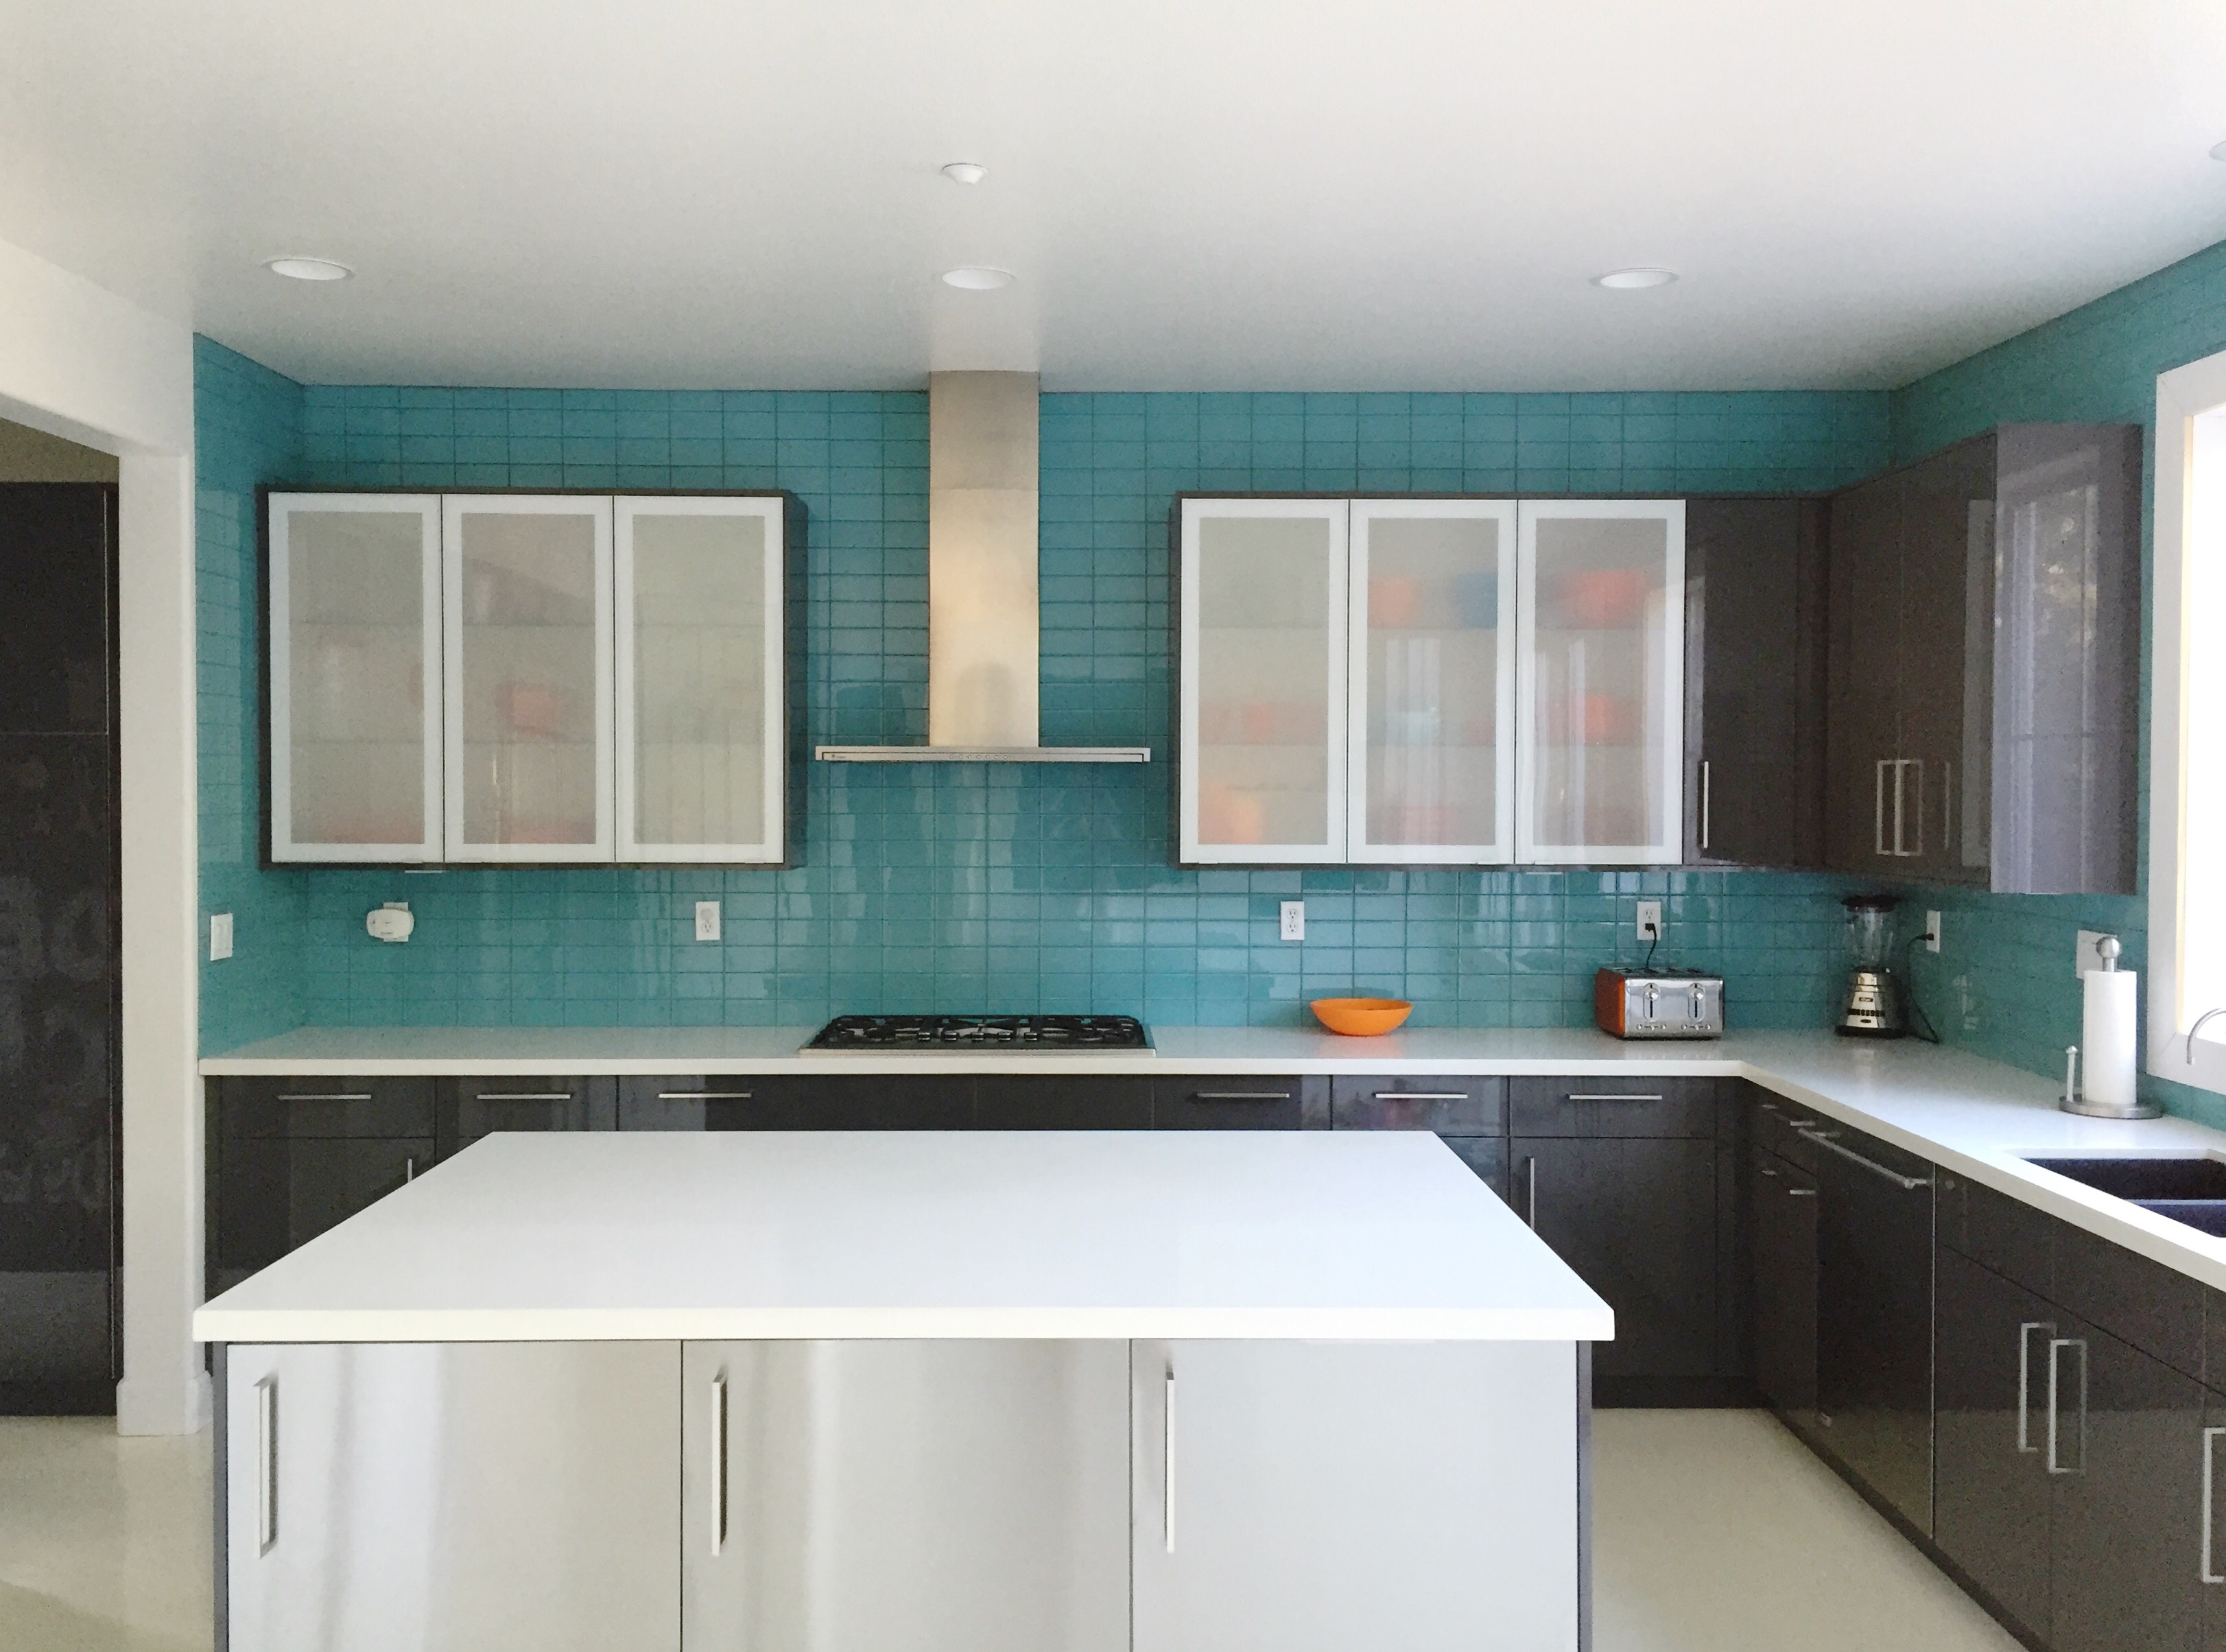 How To Install Glass Tile Backsplash Easy Diy For A Better Kitchen